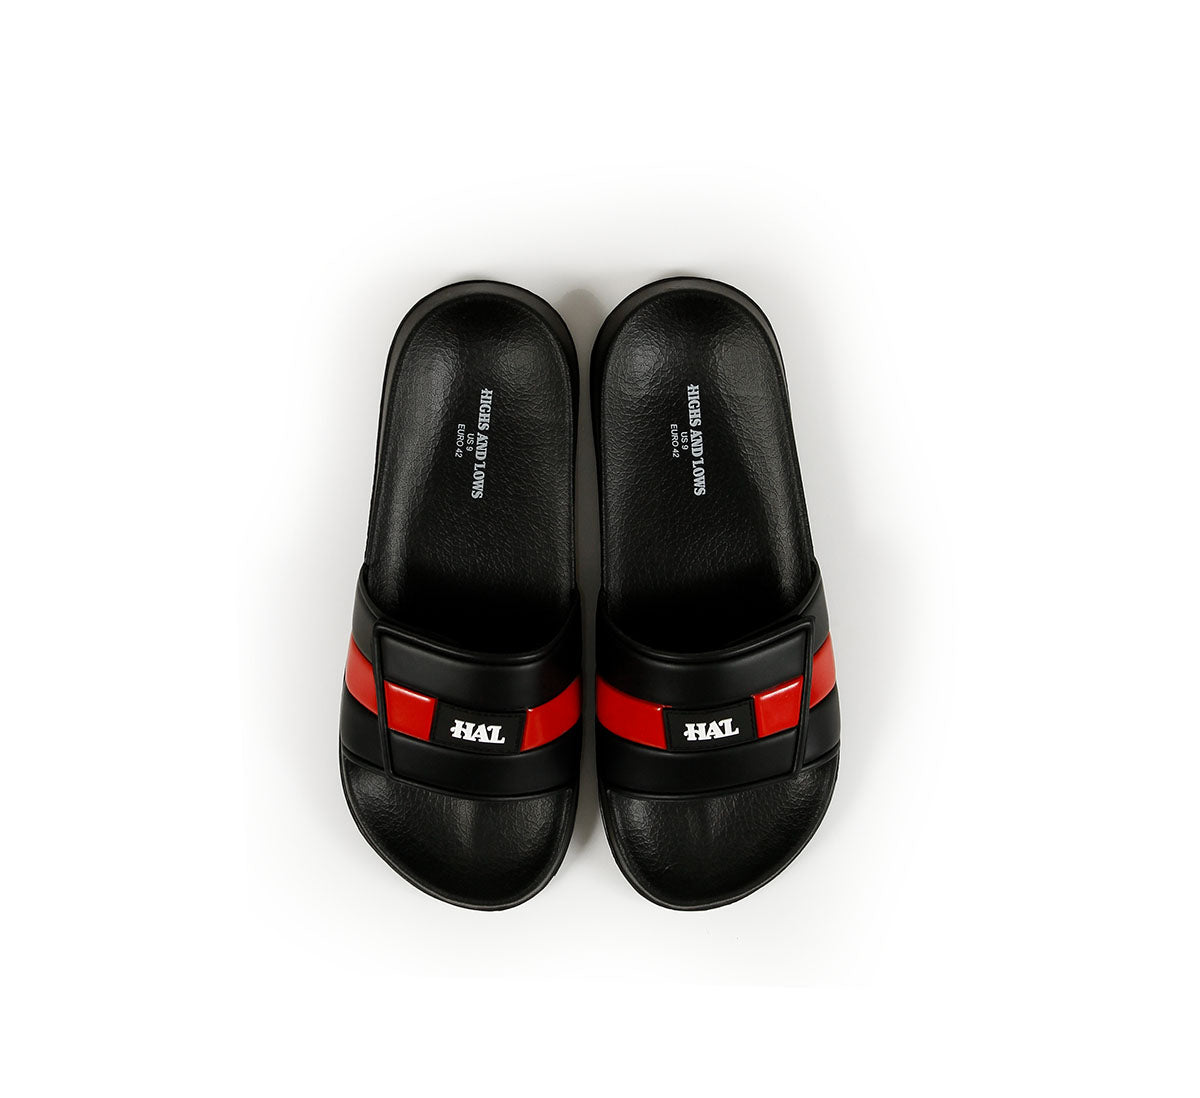 HAL S19 Trademark Velcro Slides Black/Red